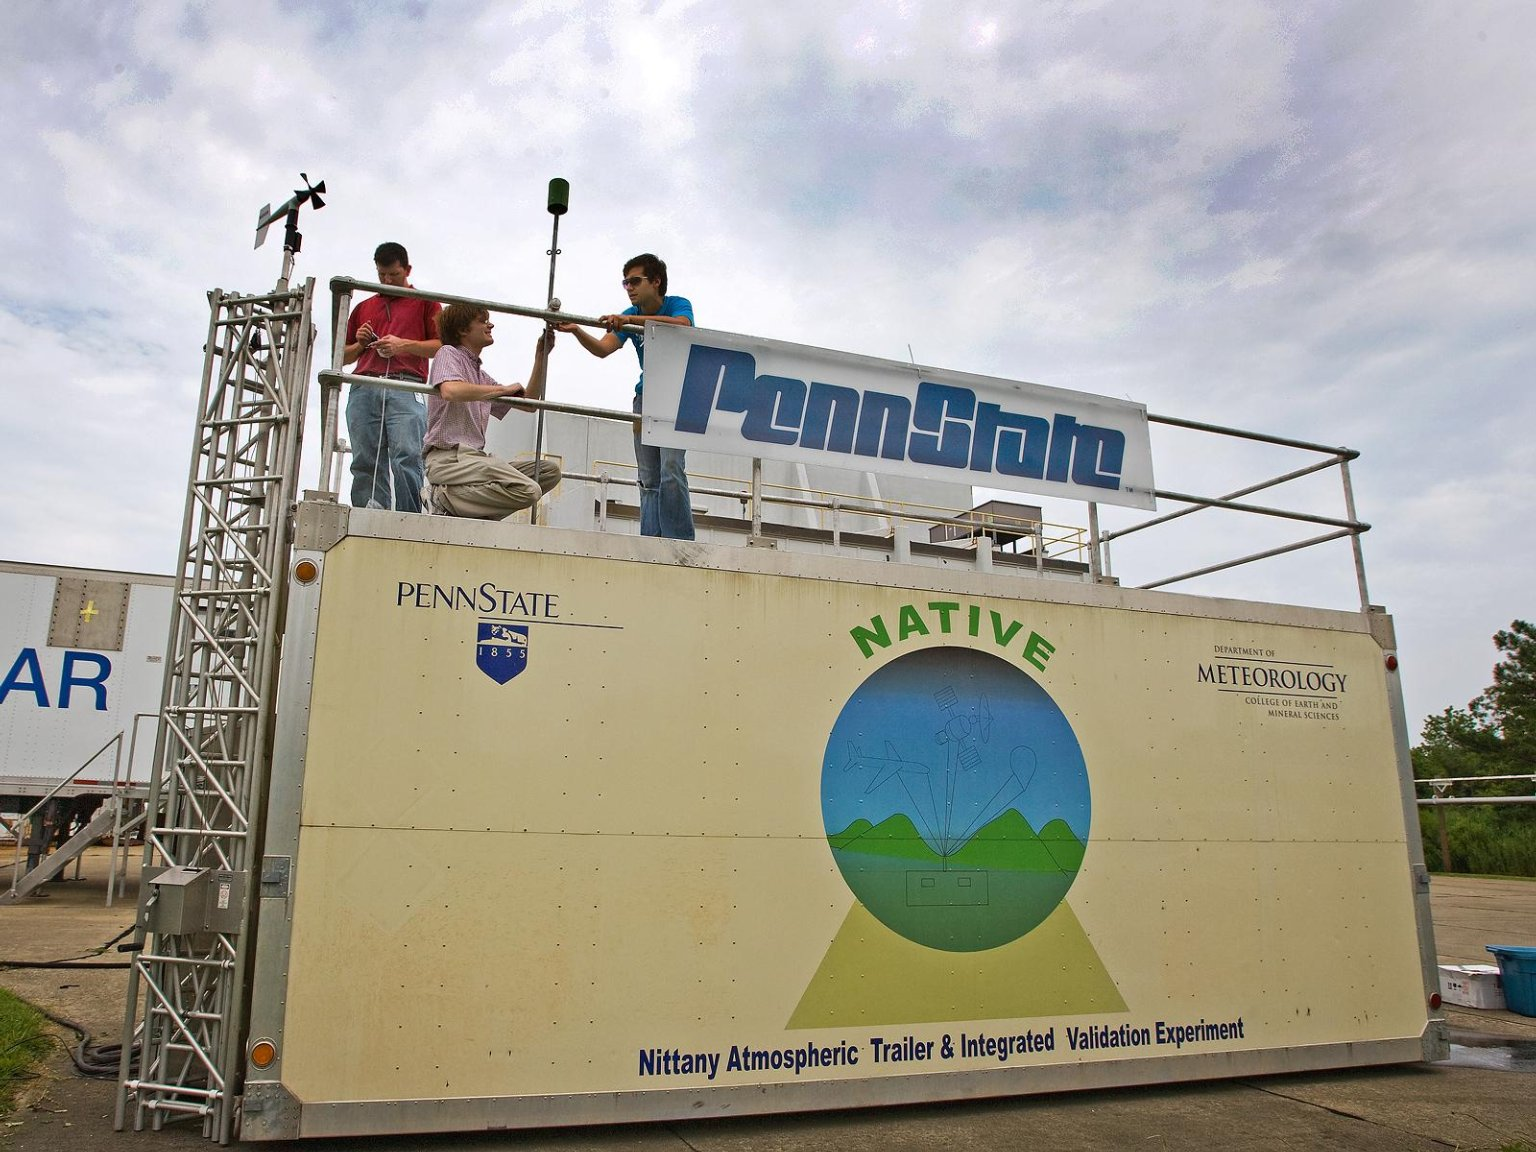 Penn State's NATIVE Mobile Research Facility